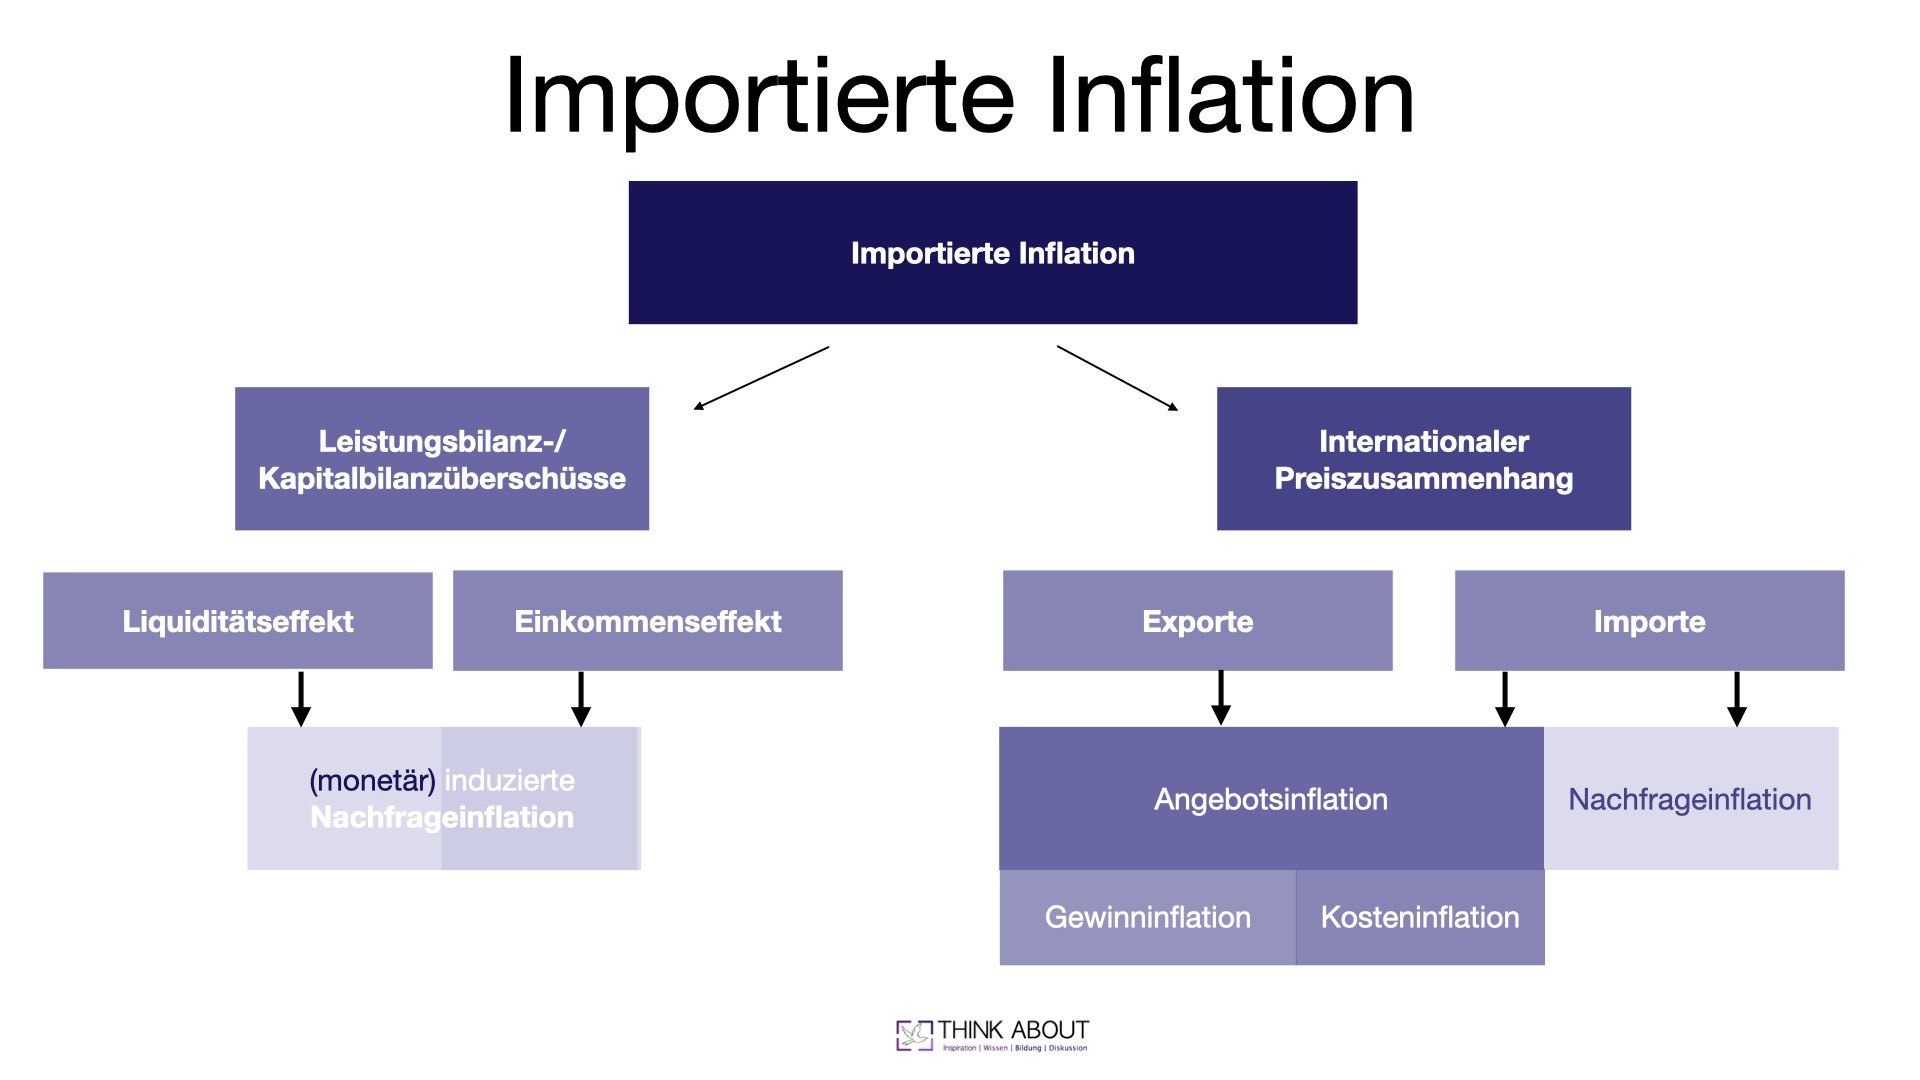 importierte inflation